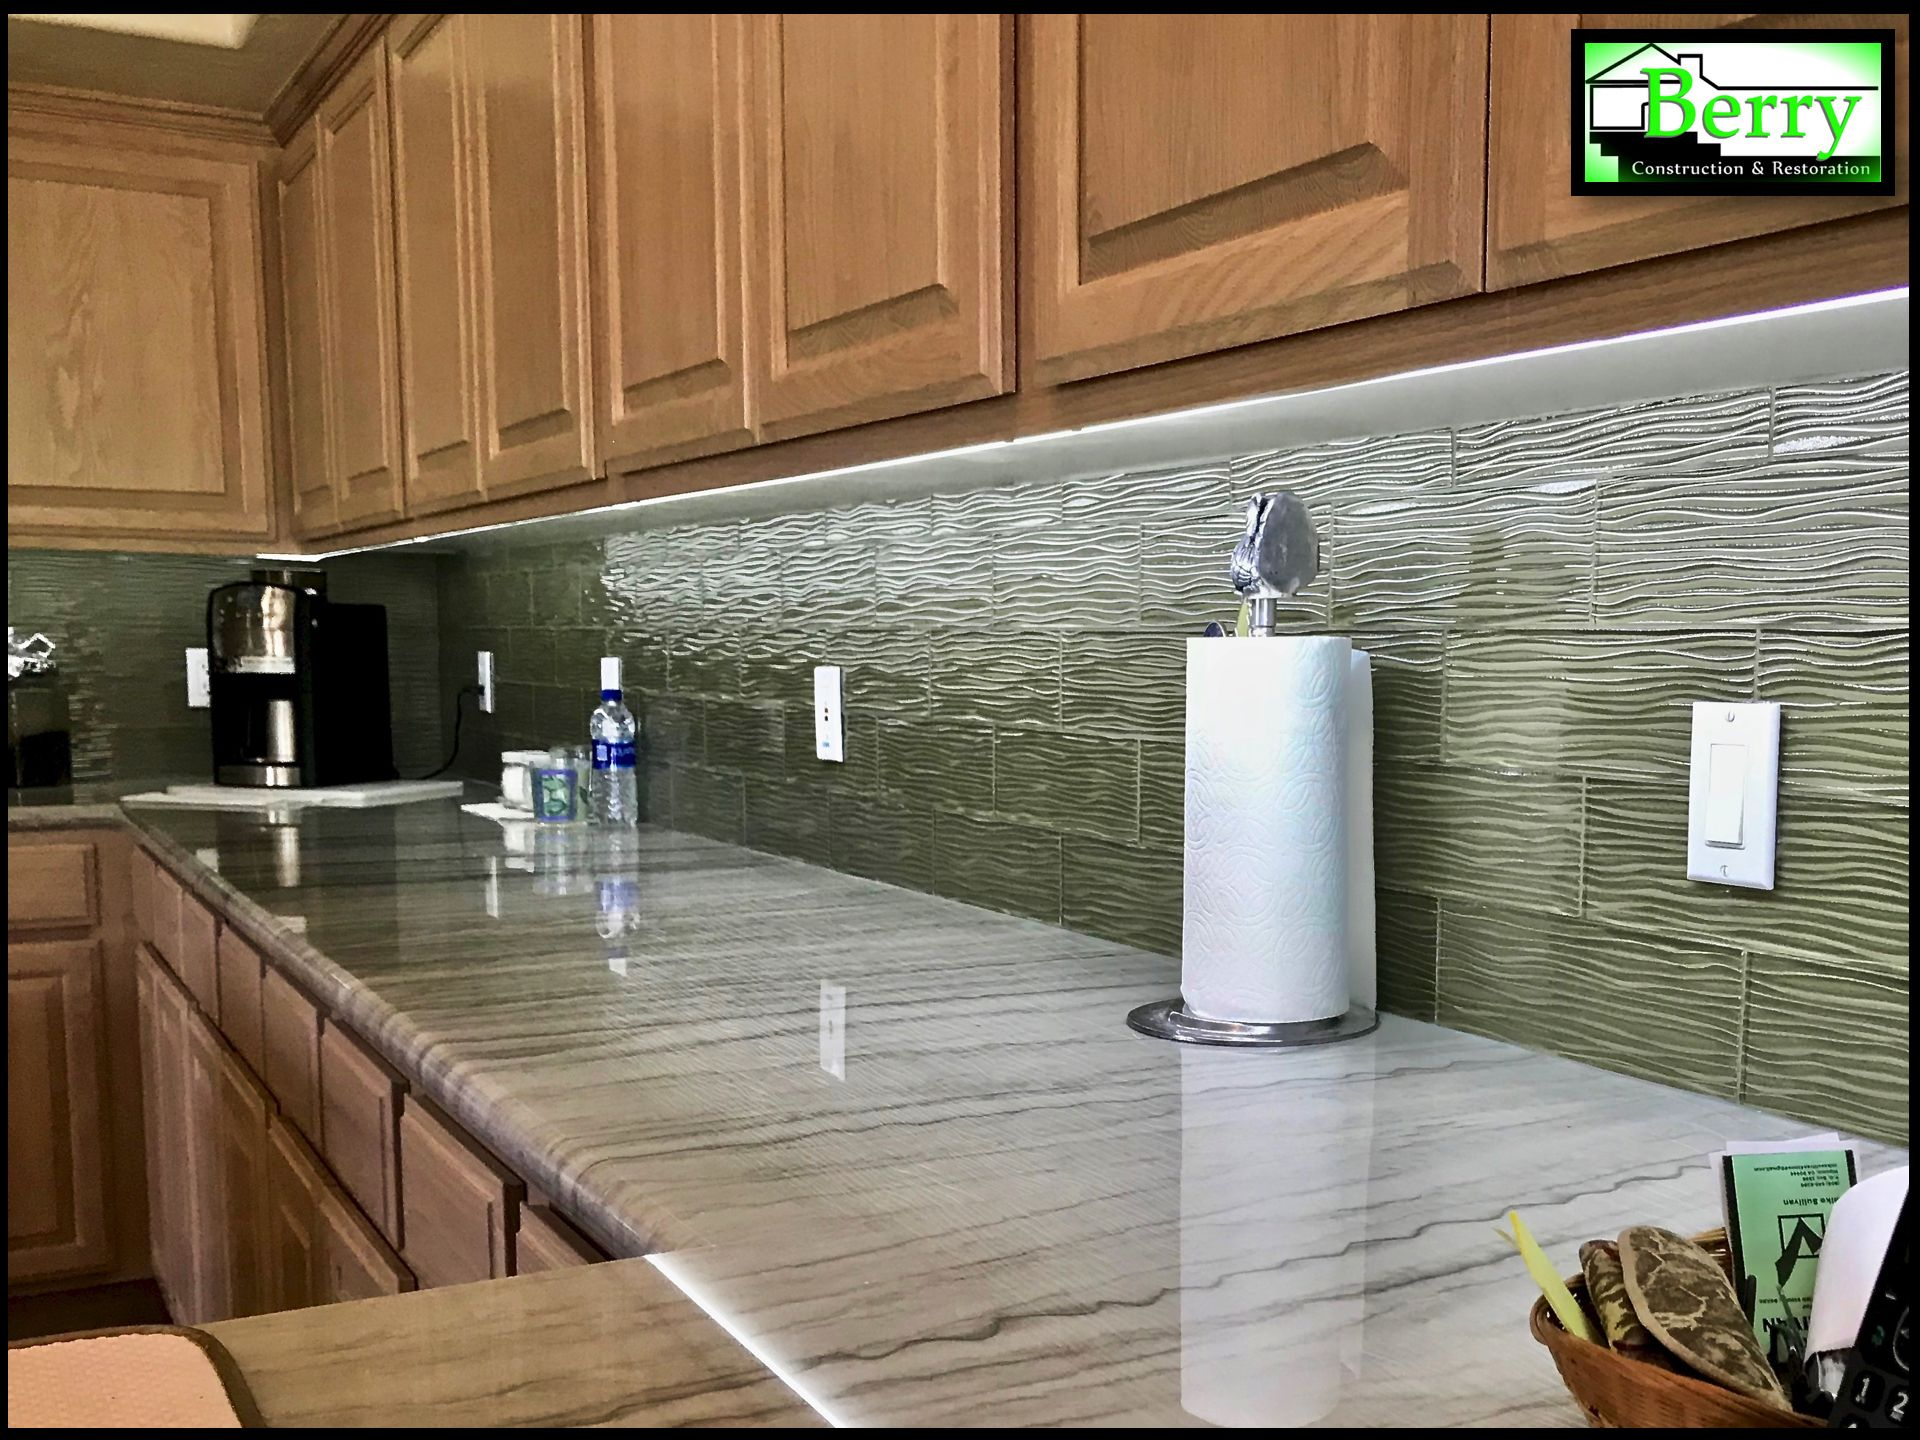 Here Is The Completed Restoration Follow Up Post Of The Nipomo Home That Suffered A Water Damage We Specialize In Insurance Restorat Quartzite Countertops Travertine Tile Oak Cabinets